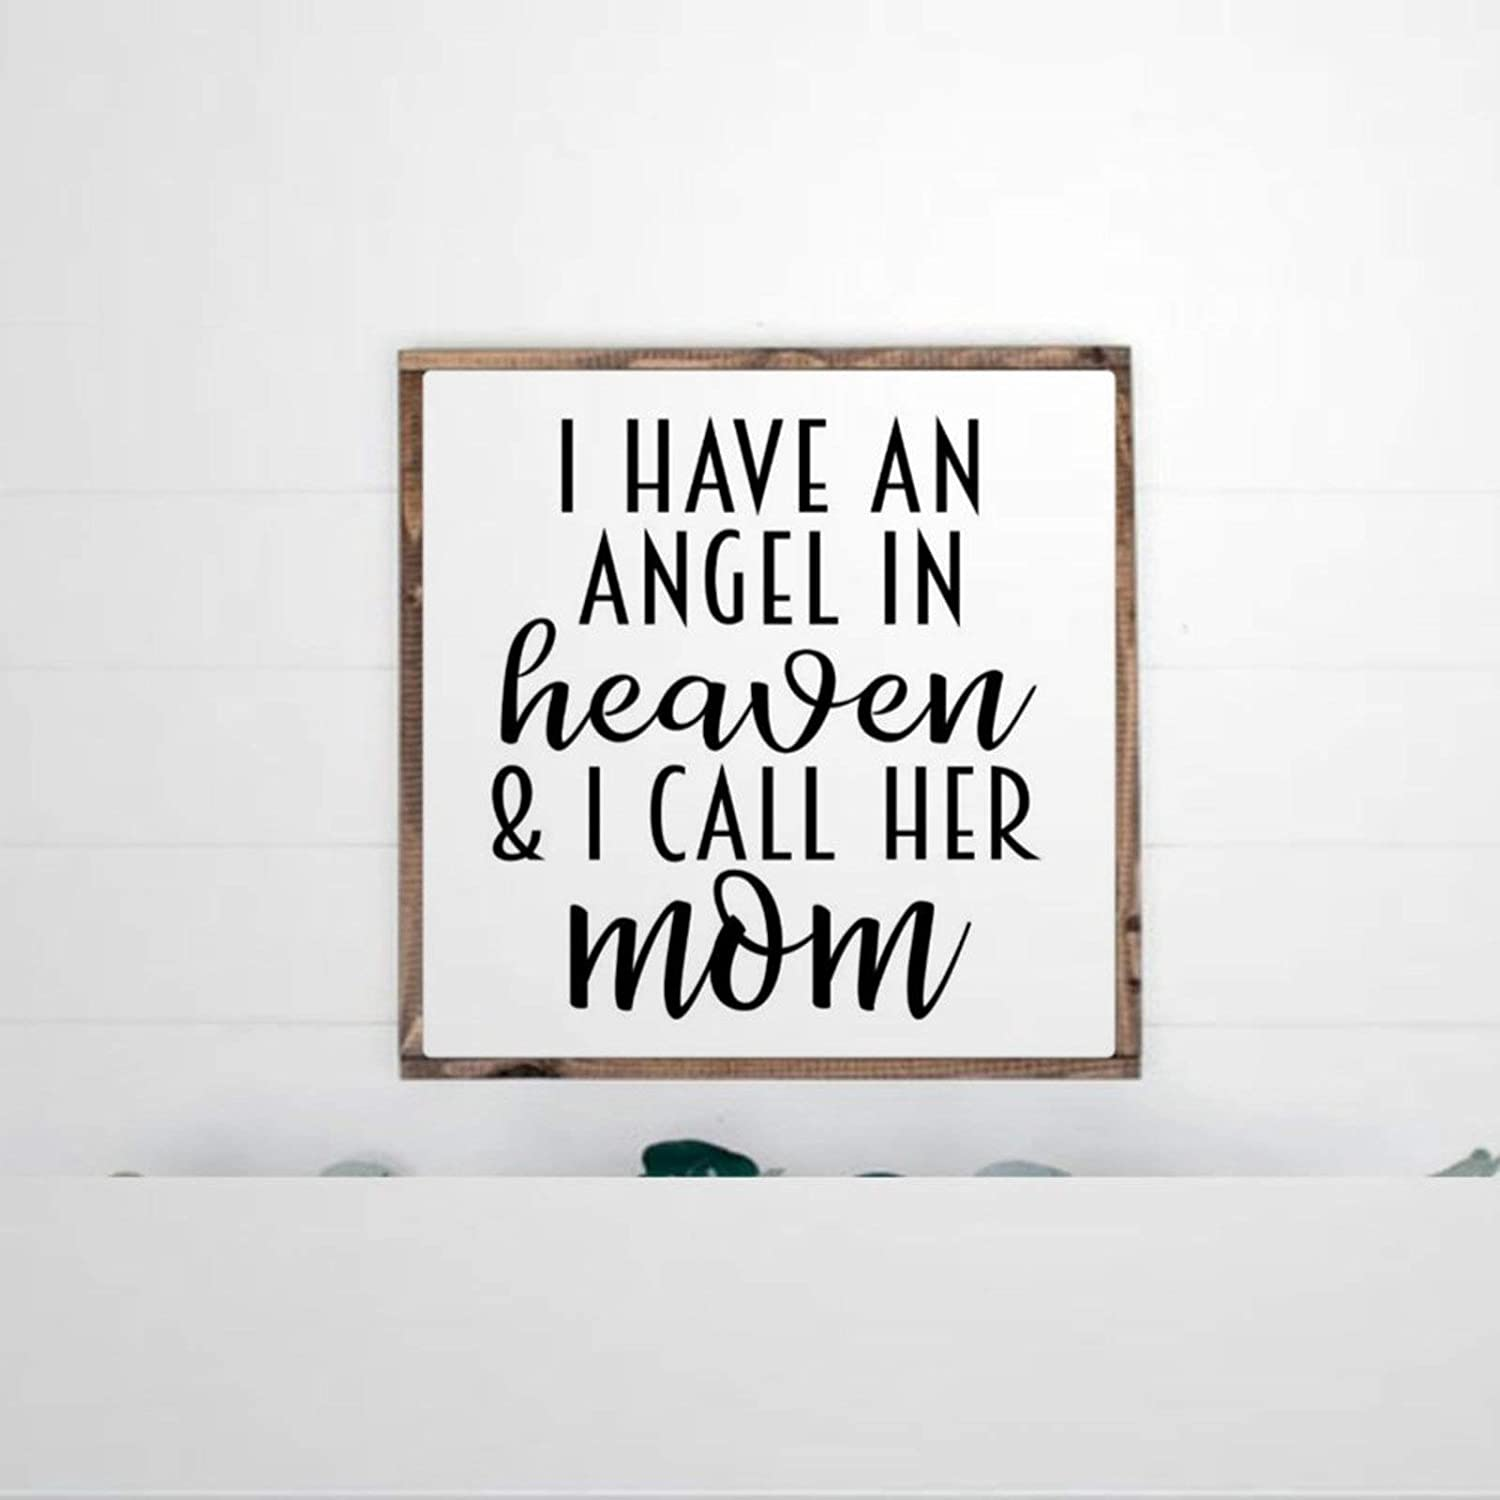 DONL9BAUER Framed Wooden Sign I Have an Angel in Heaven and I Call Her Mom Wall Hanging Funny Farmhouse Home Decor Wall Art for Living Room